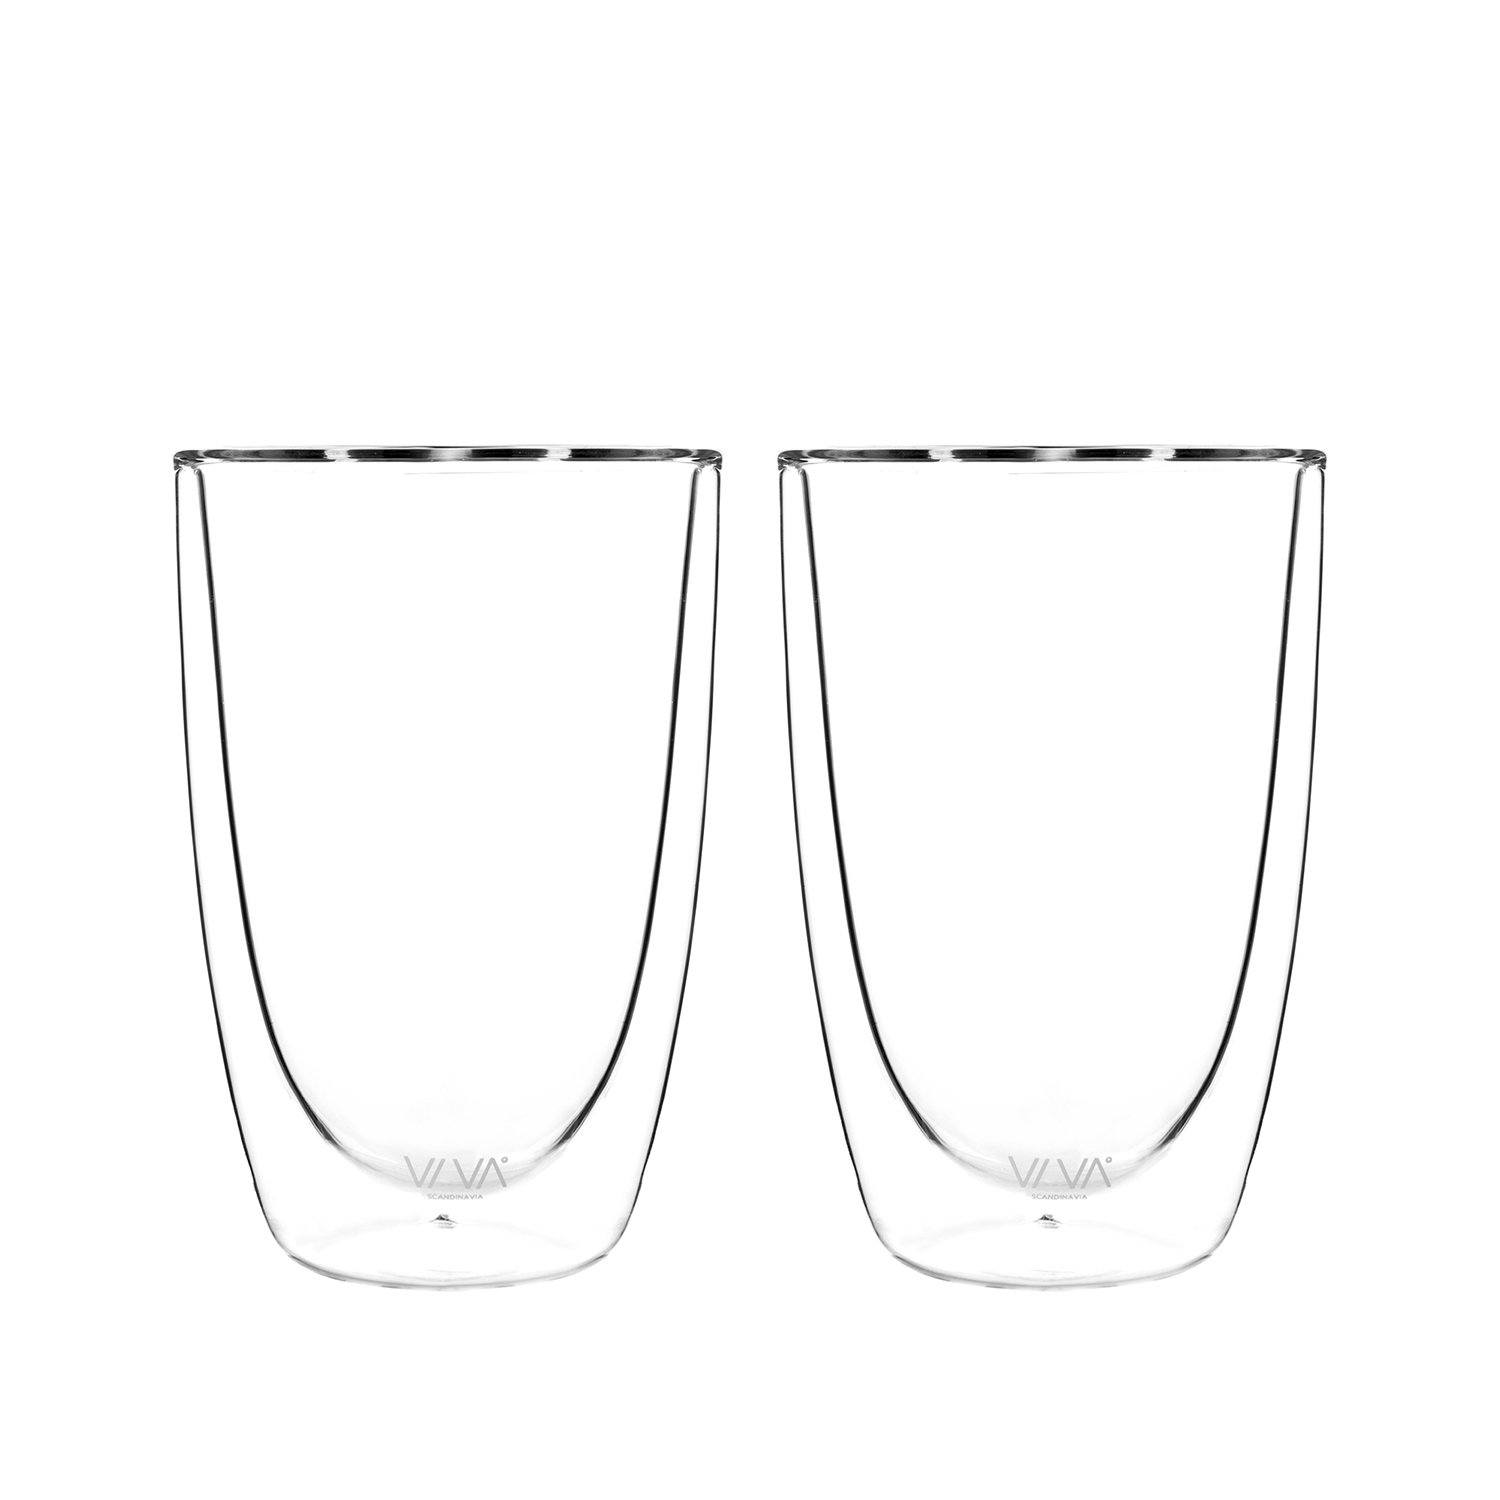 LAUREN™ Double Wall Cup - Set Of 2 (380ml) - VIVA